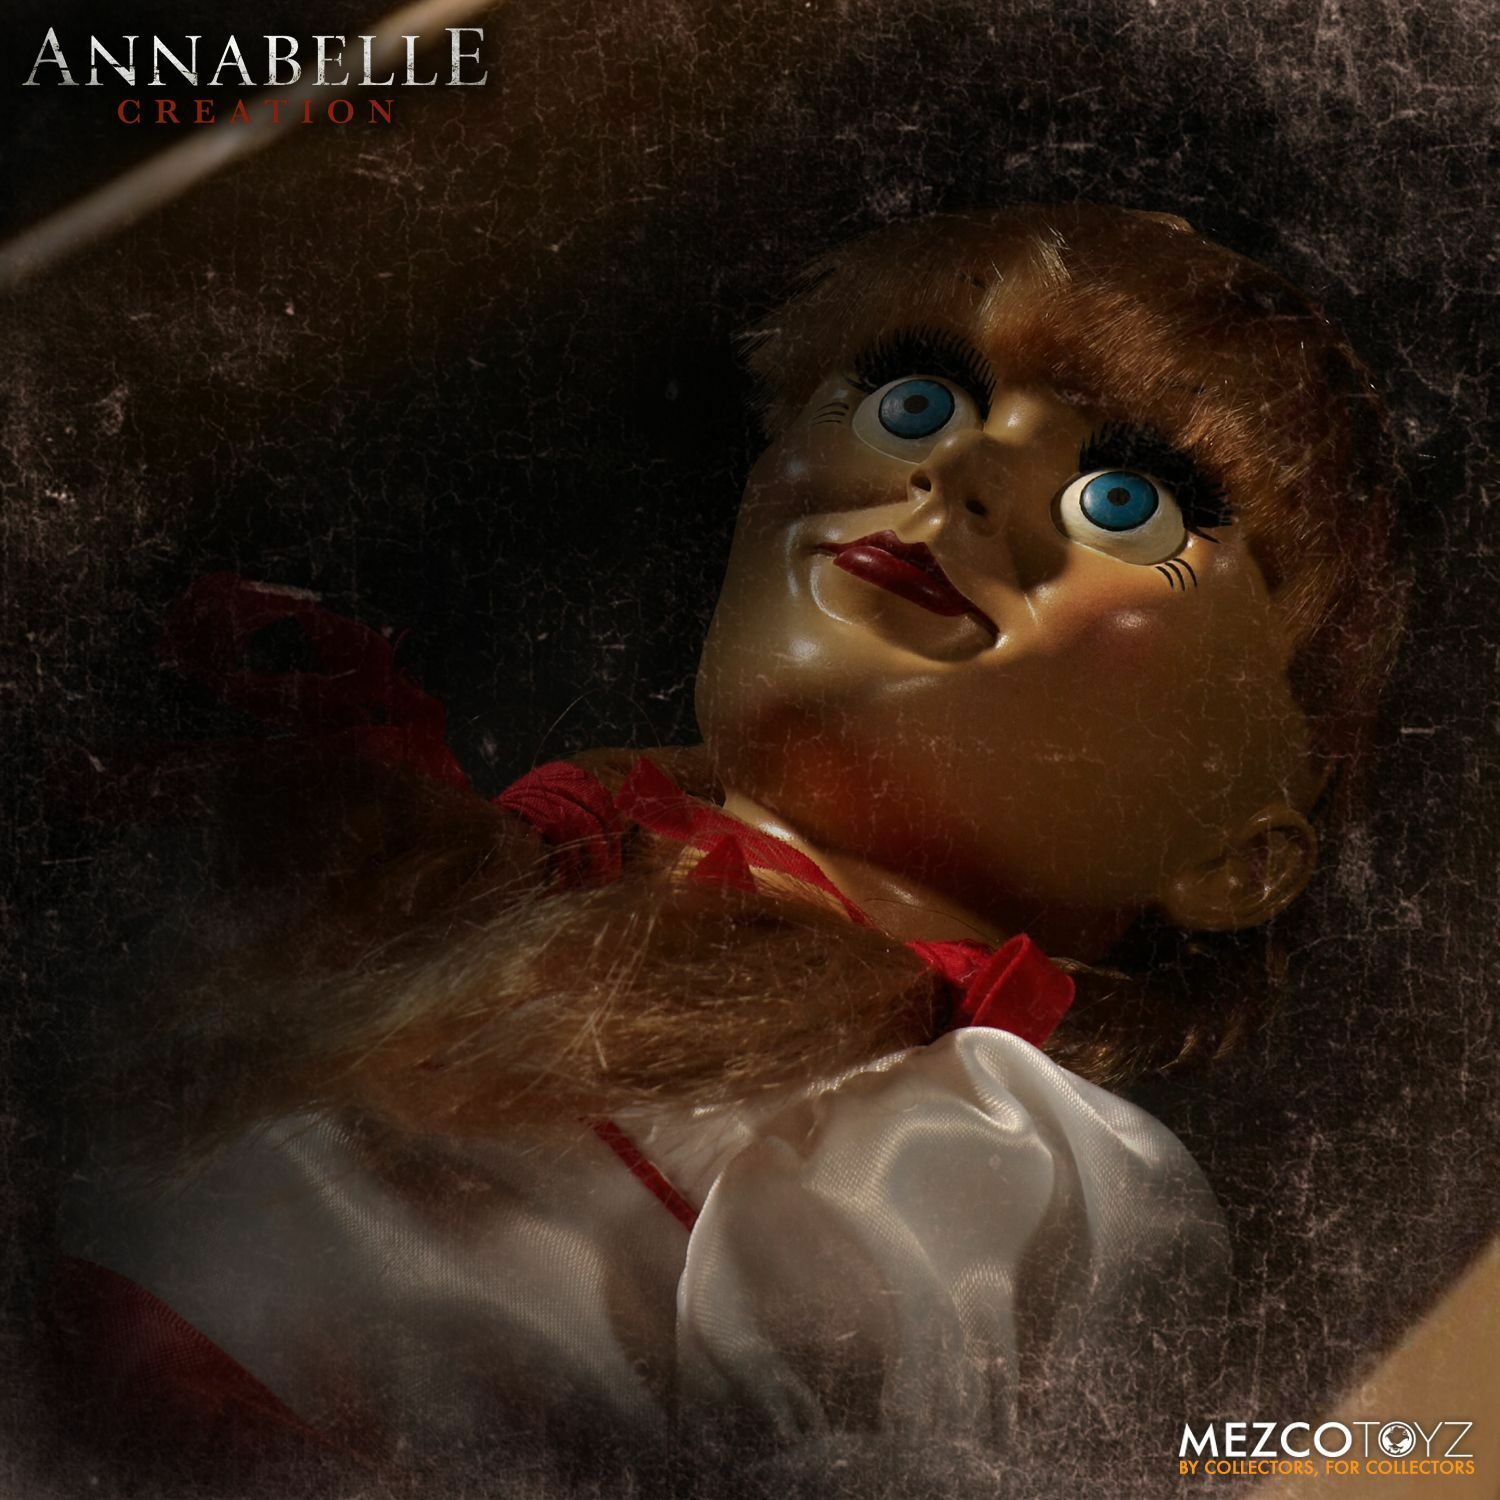 Mezco Toyz Annabelle Creation Warner Brothers Doll 18 Inches Action Figure 90503